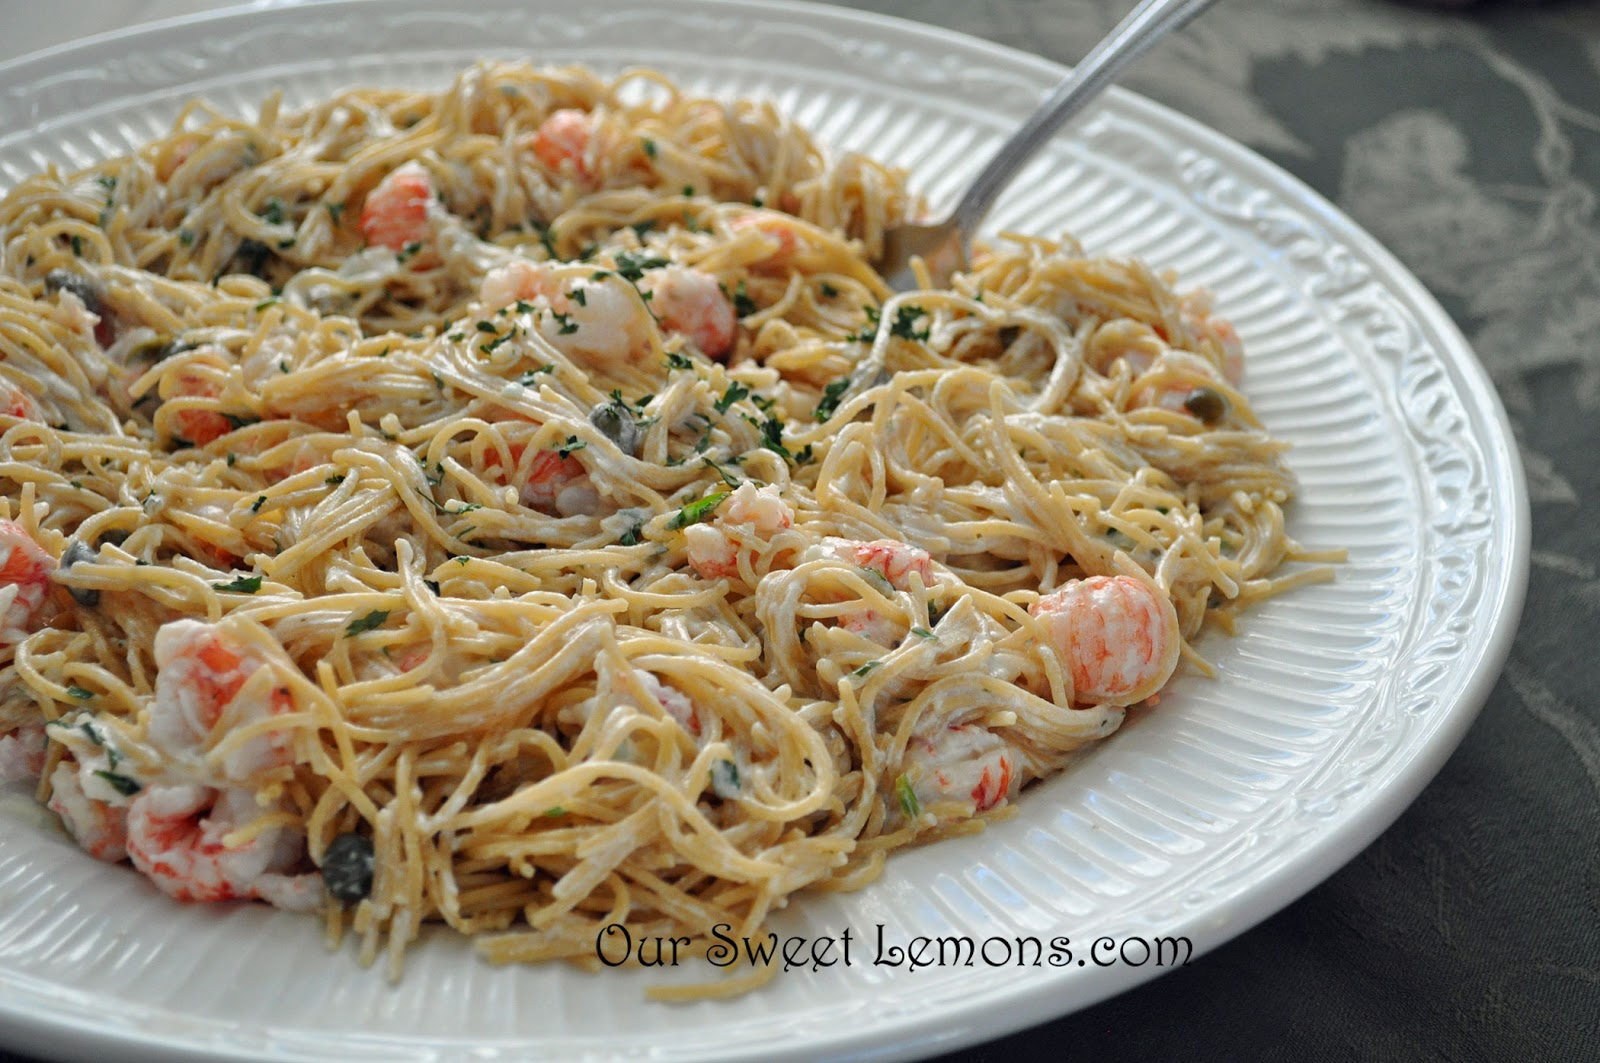 Our Sweet Lemons: Langostino and Pasta in Lemon Caper Cream Sauce